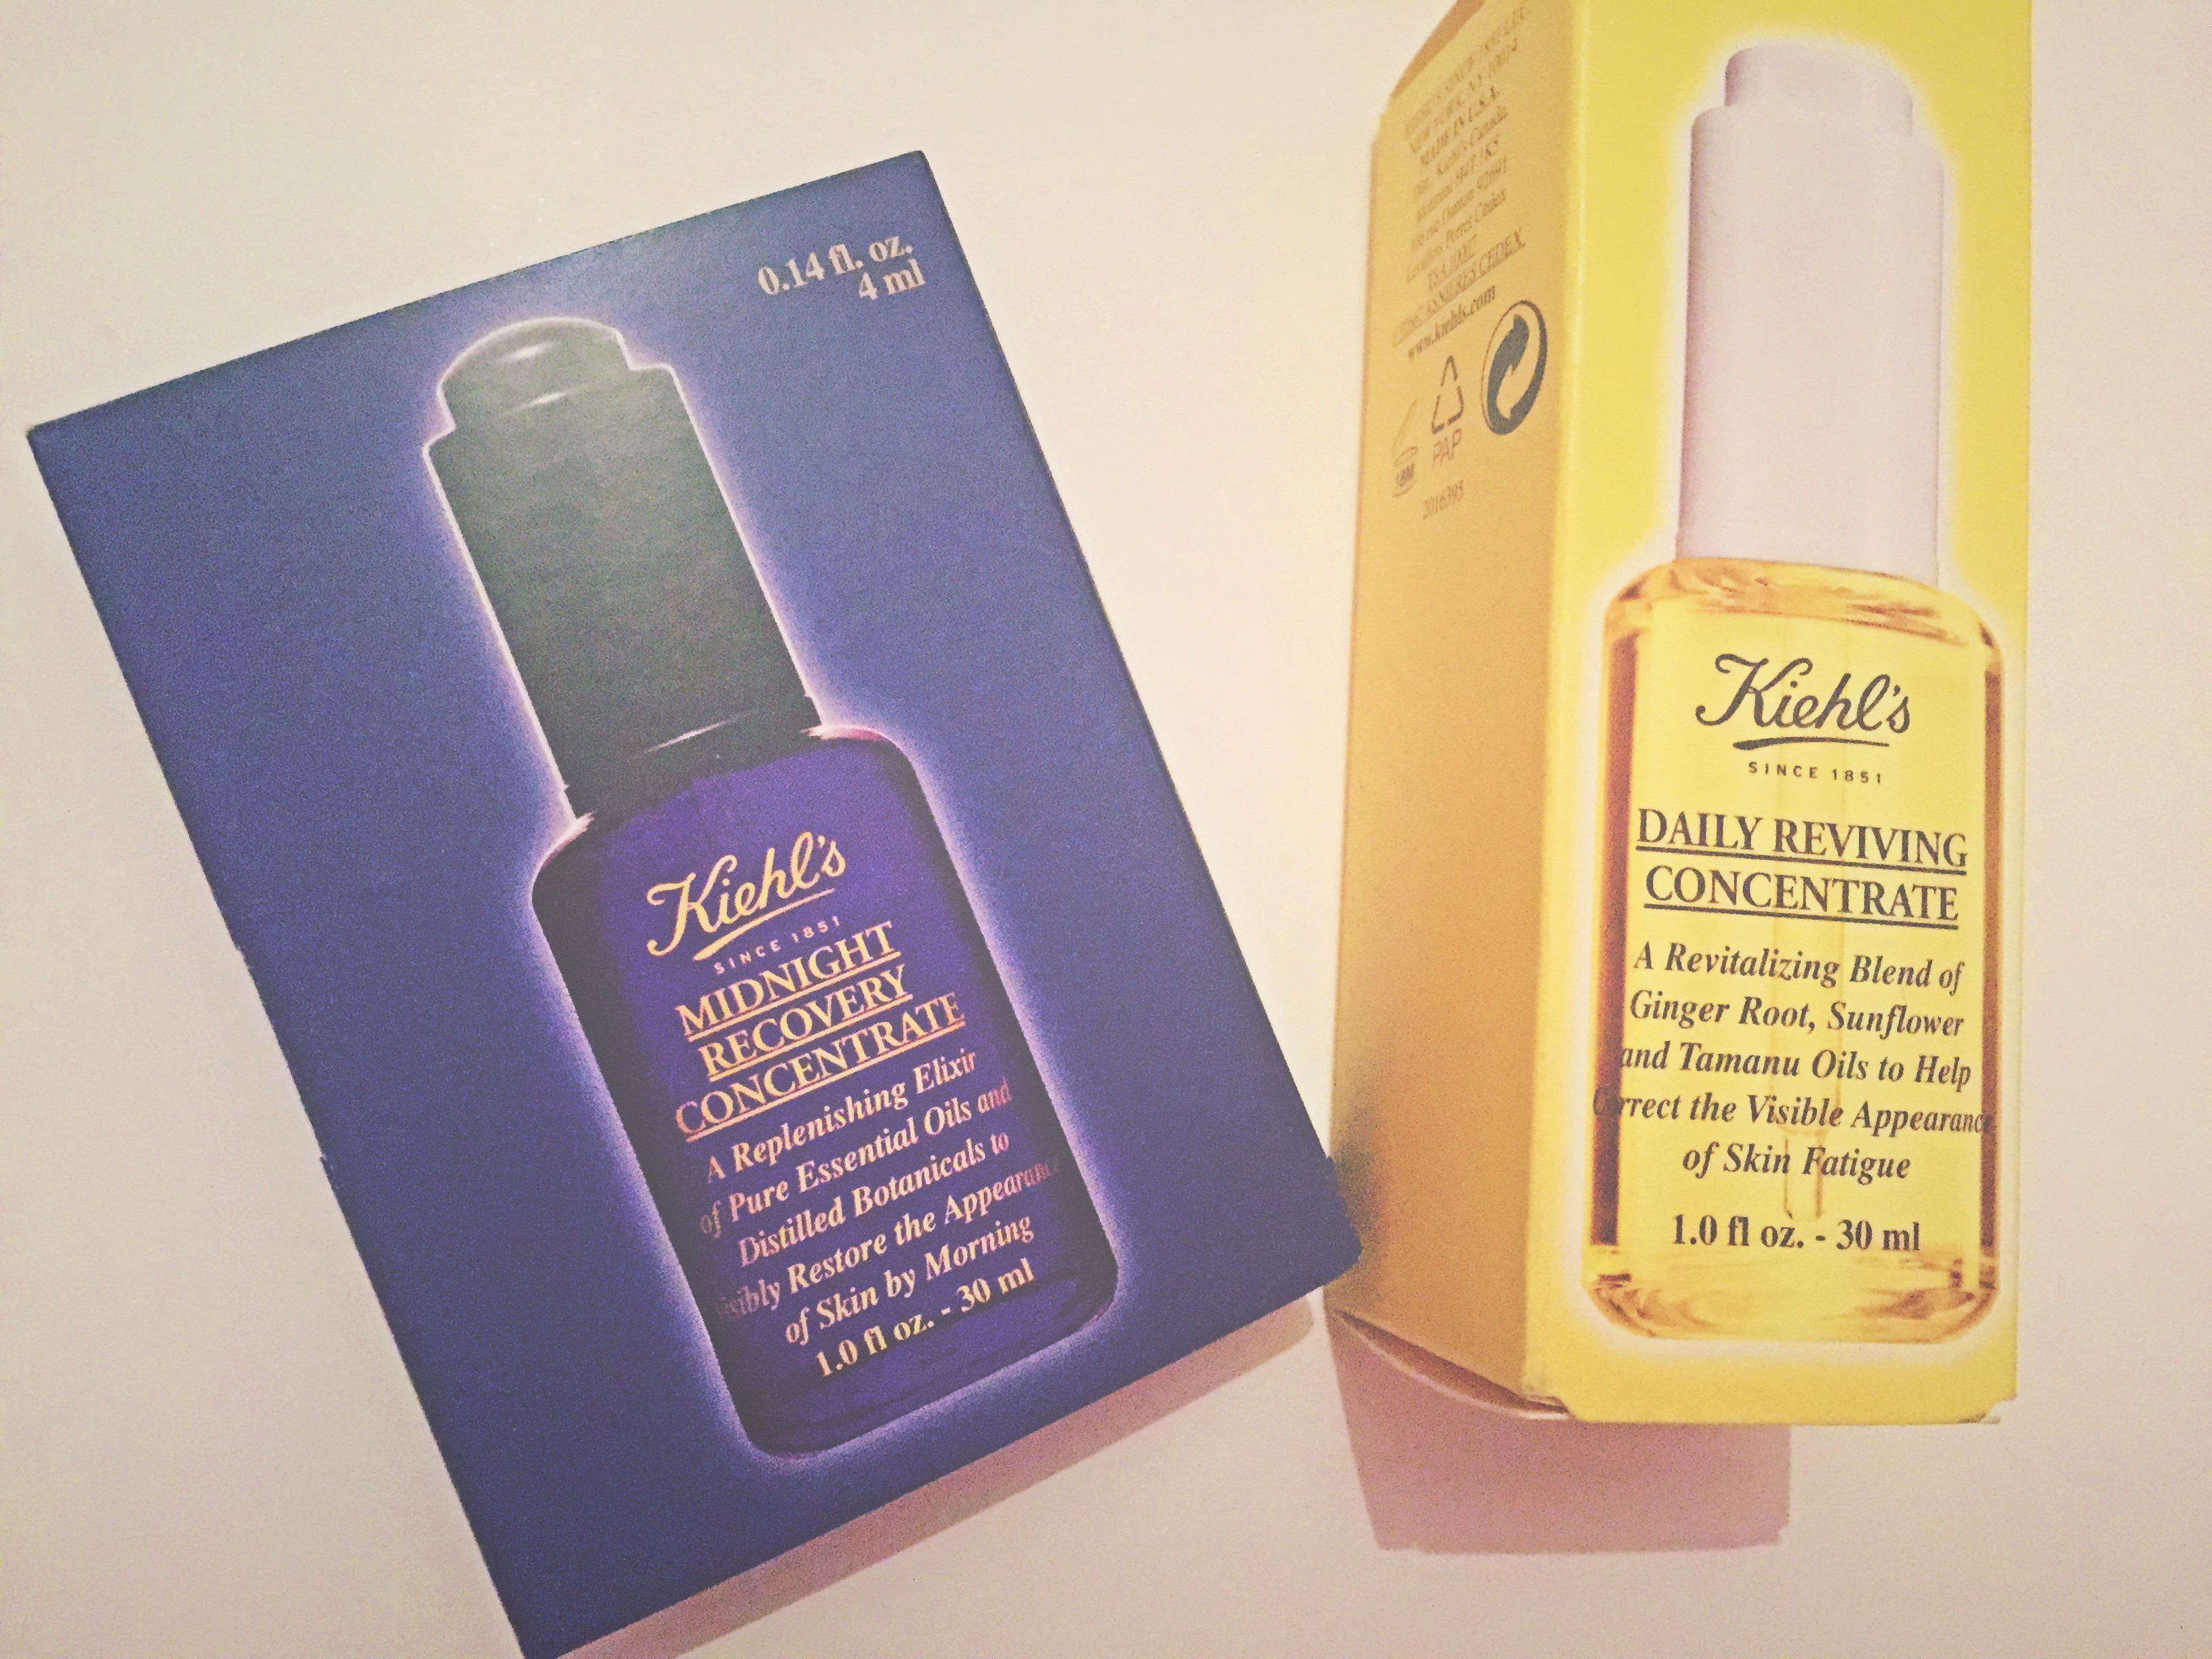 Kiehl's Daily Reviving Concentrate & Midnight Recovery Concentrate